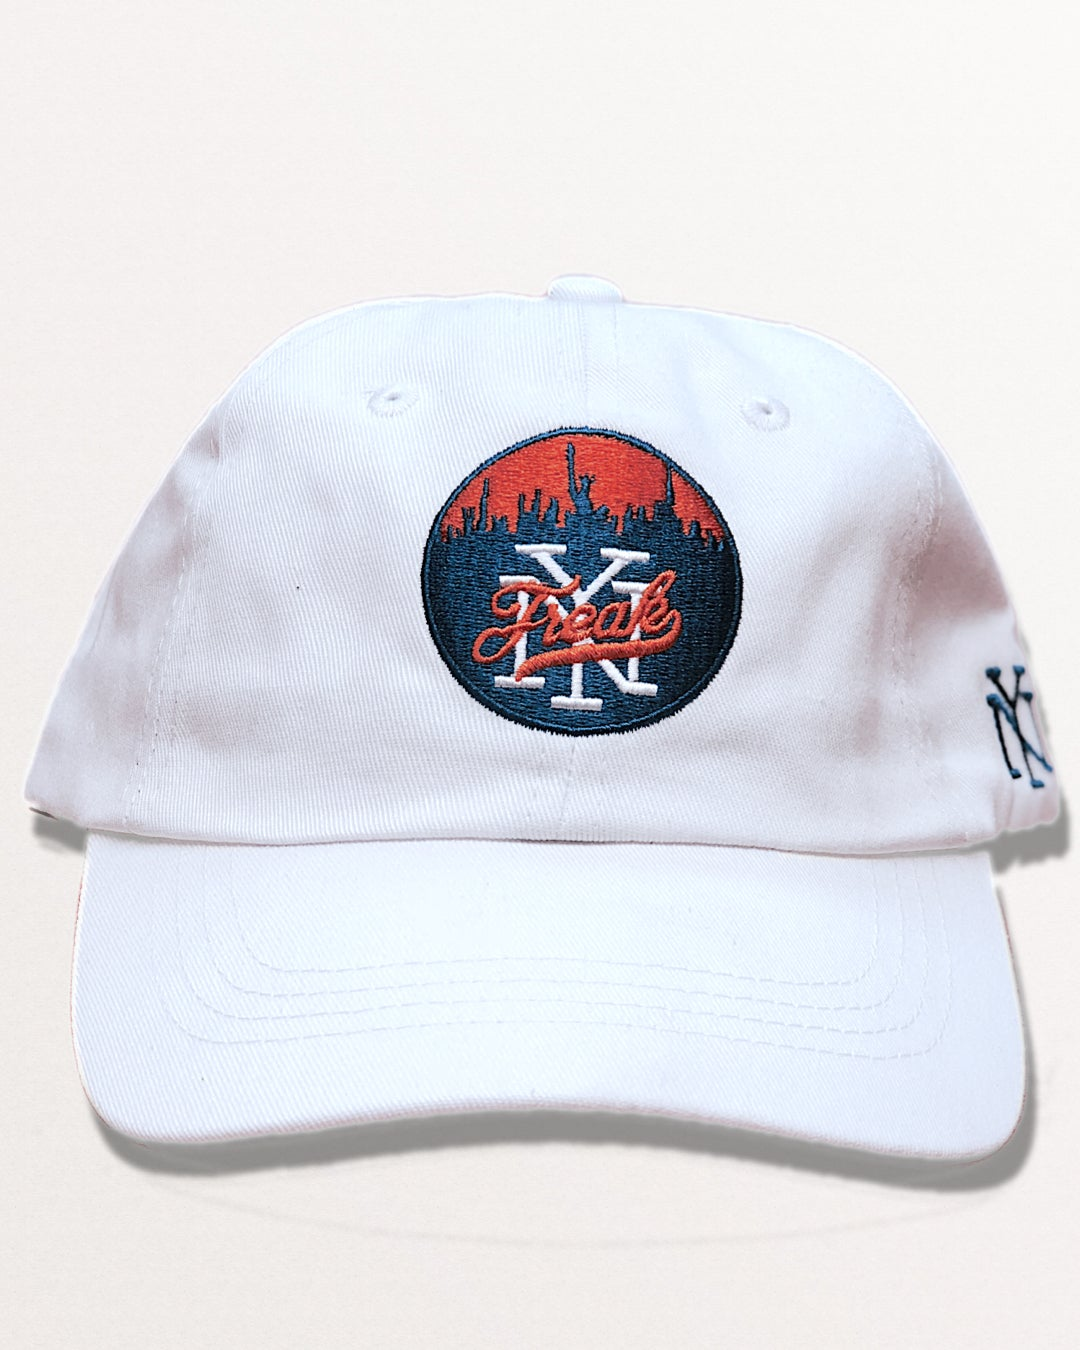 Image of Knicks/Mets Strapback.